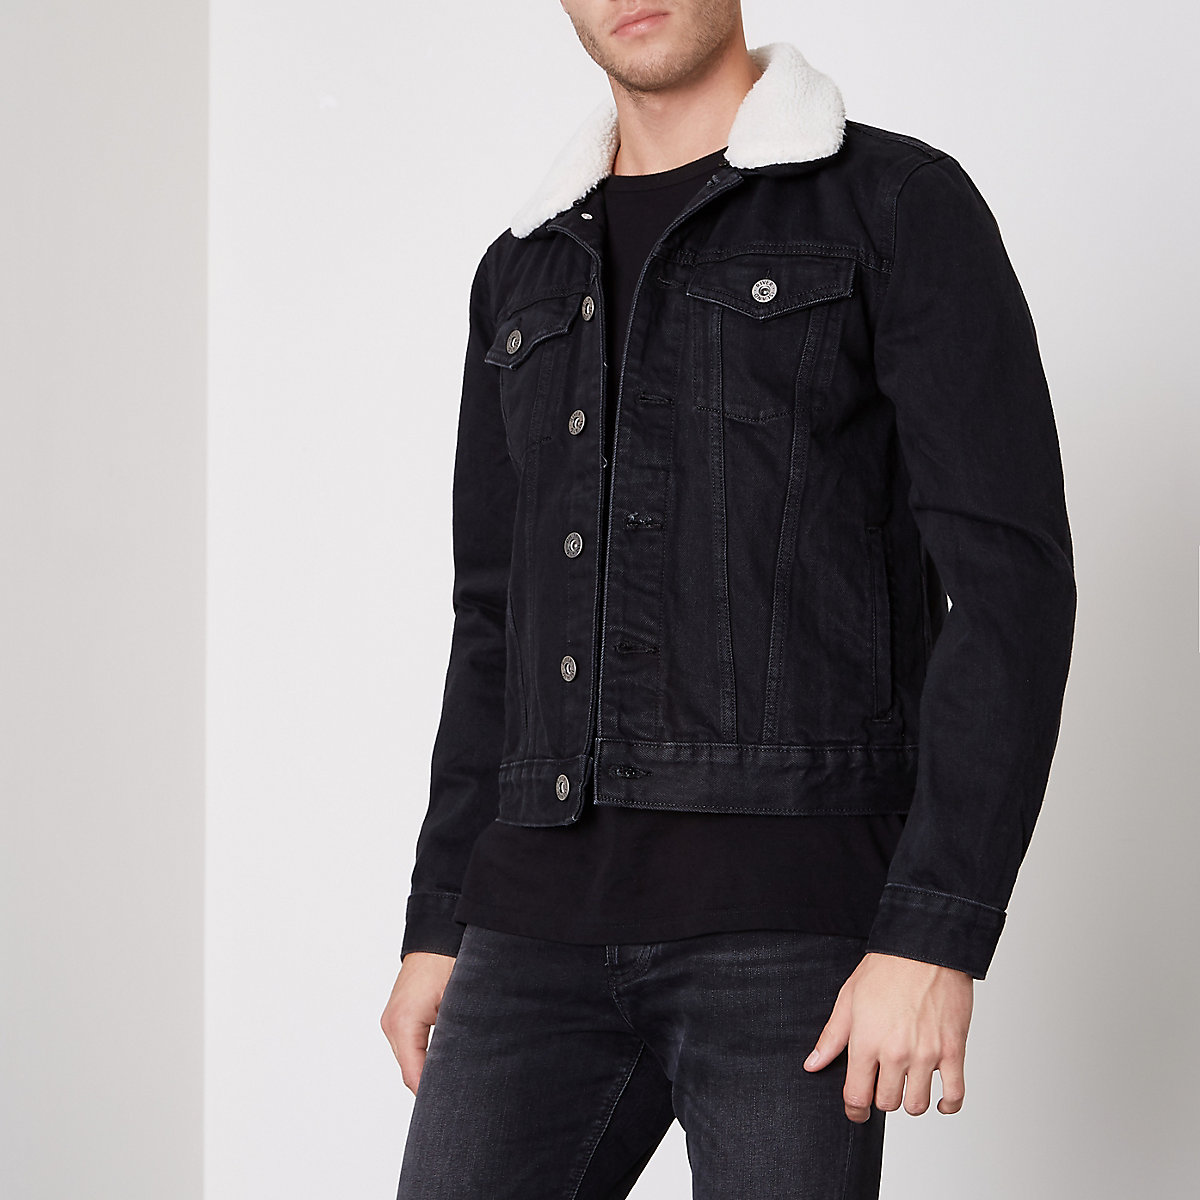 Black borg lined denim jacket